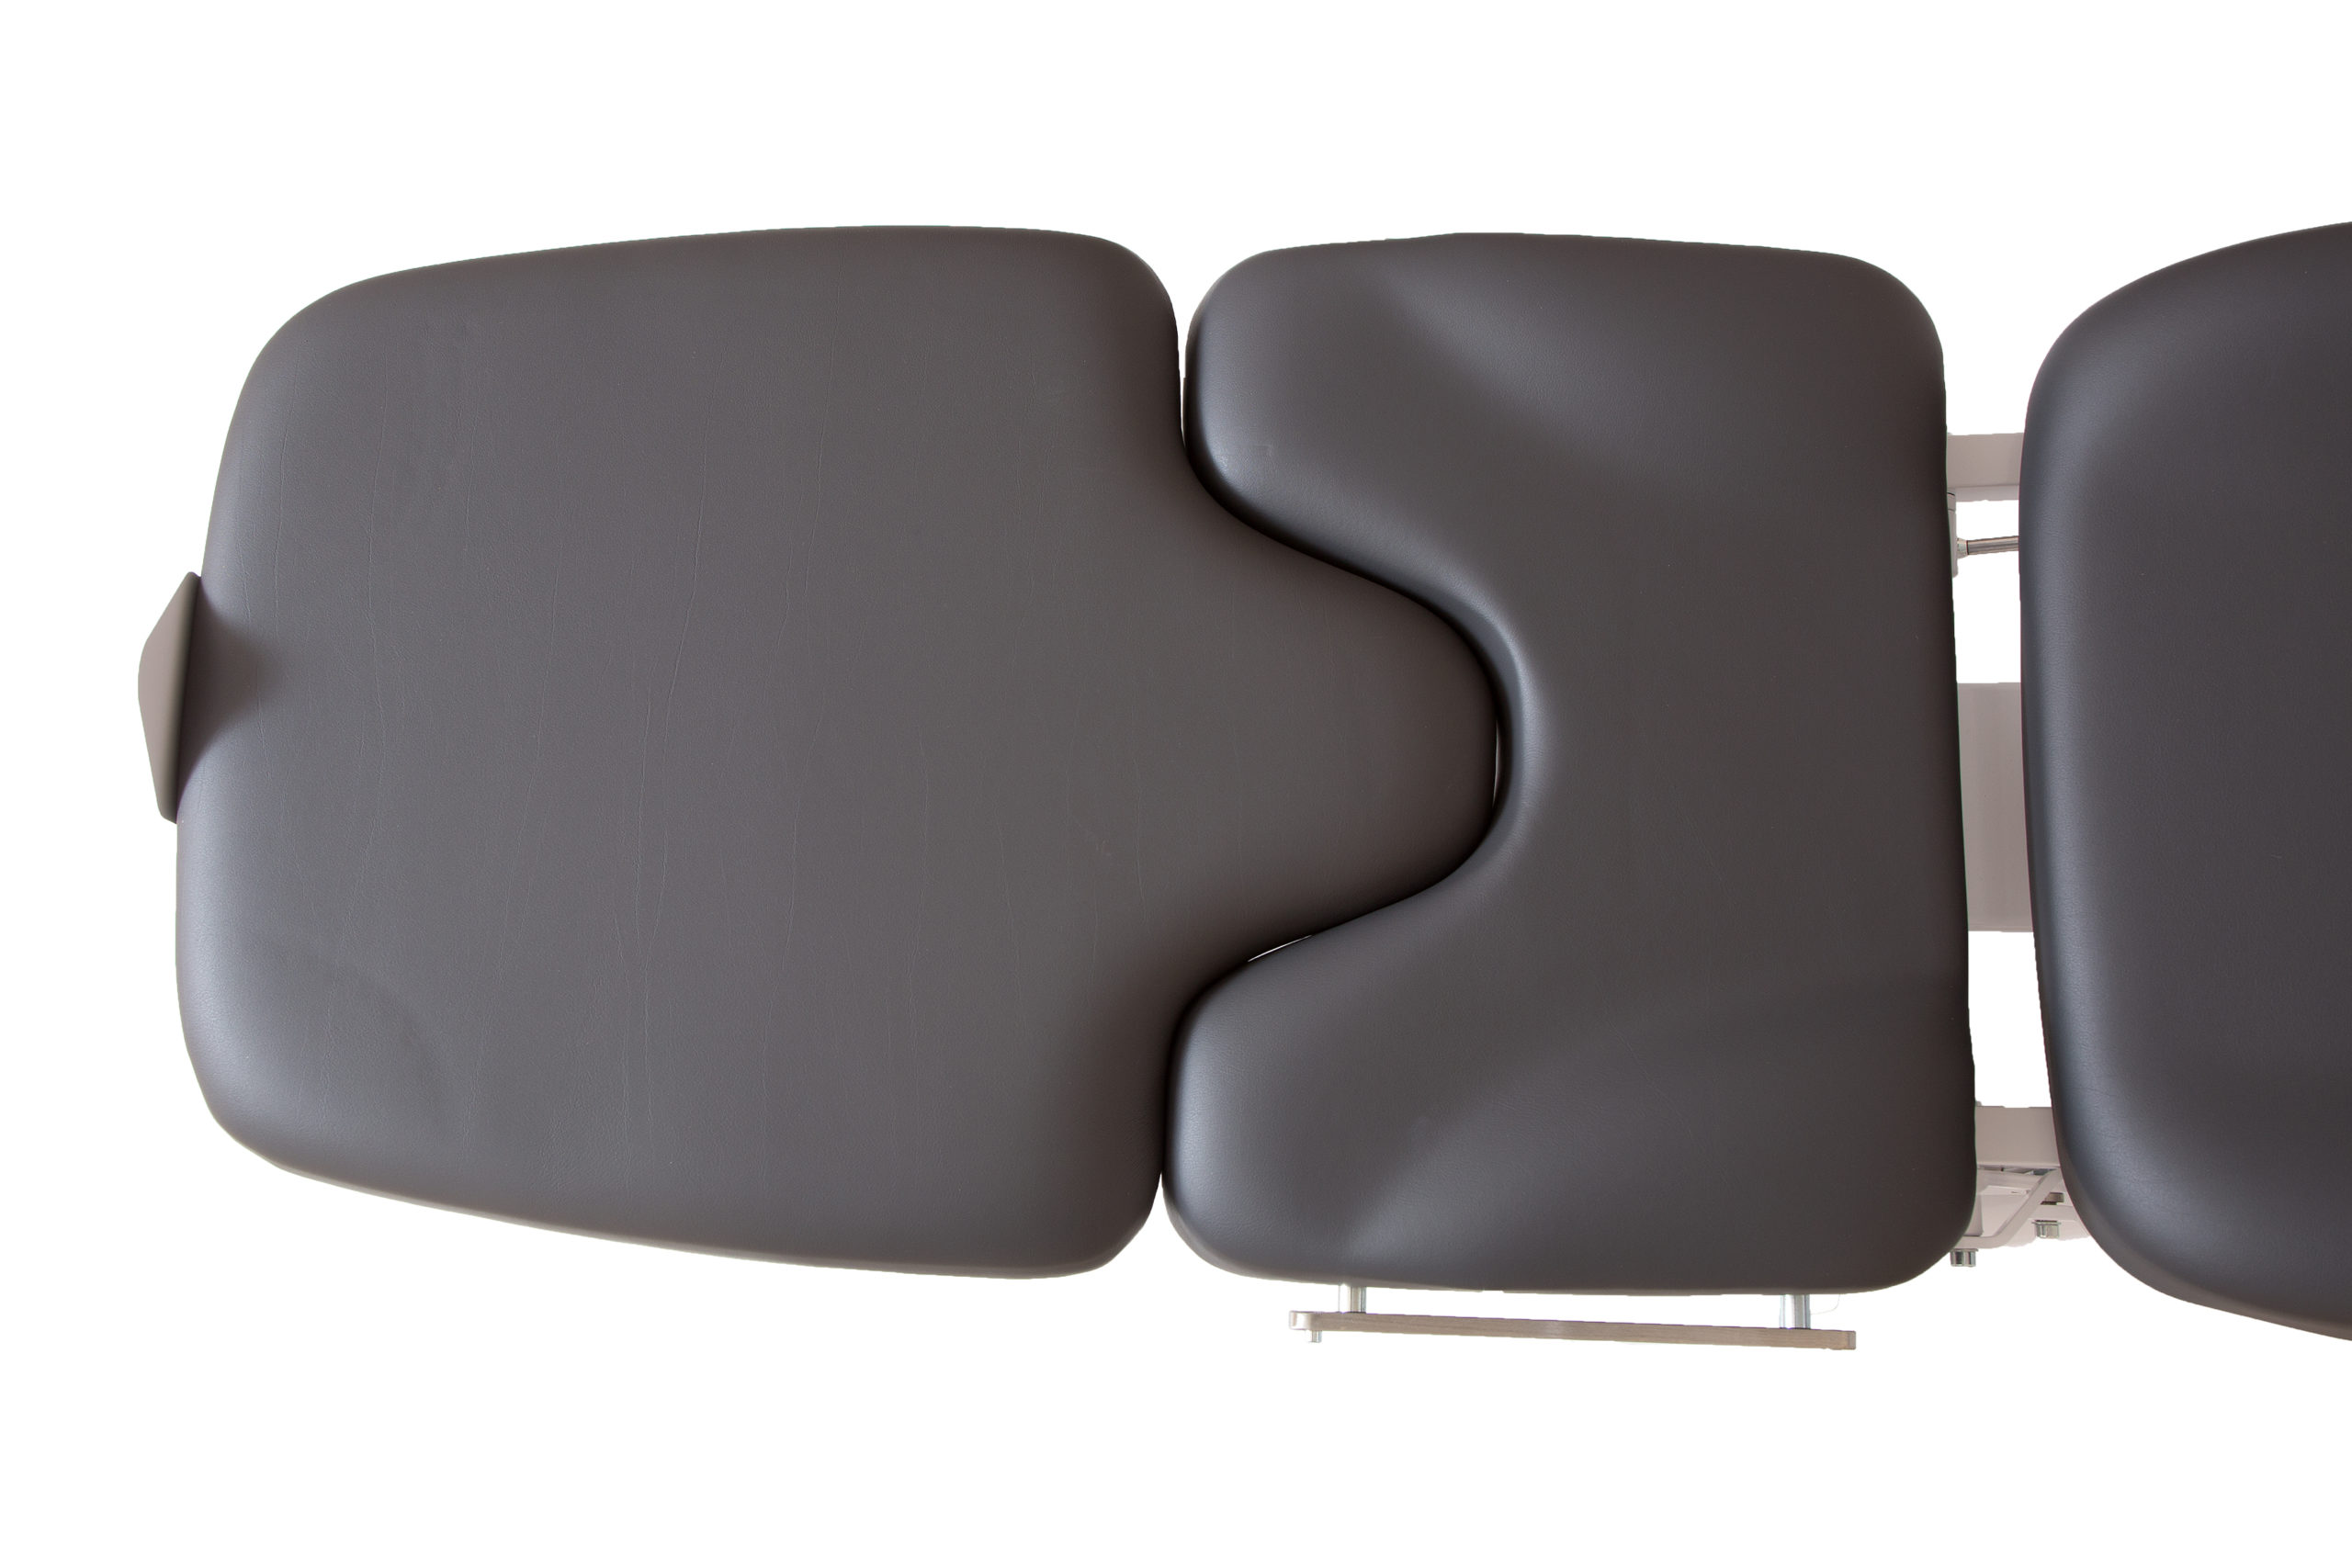 Puzzle-piece-extension-cushion-scaled.jpg